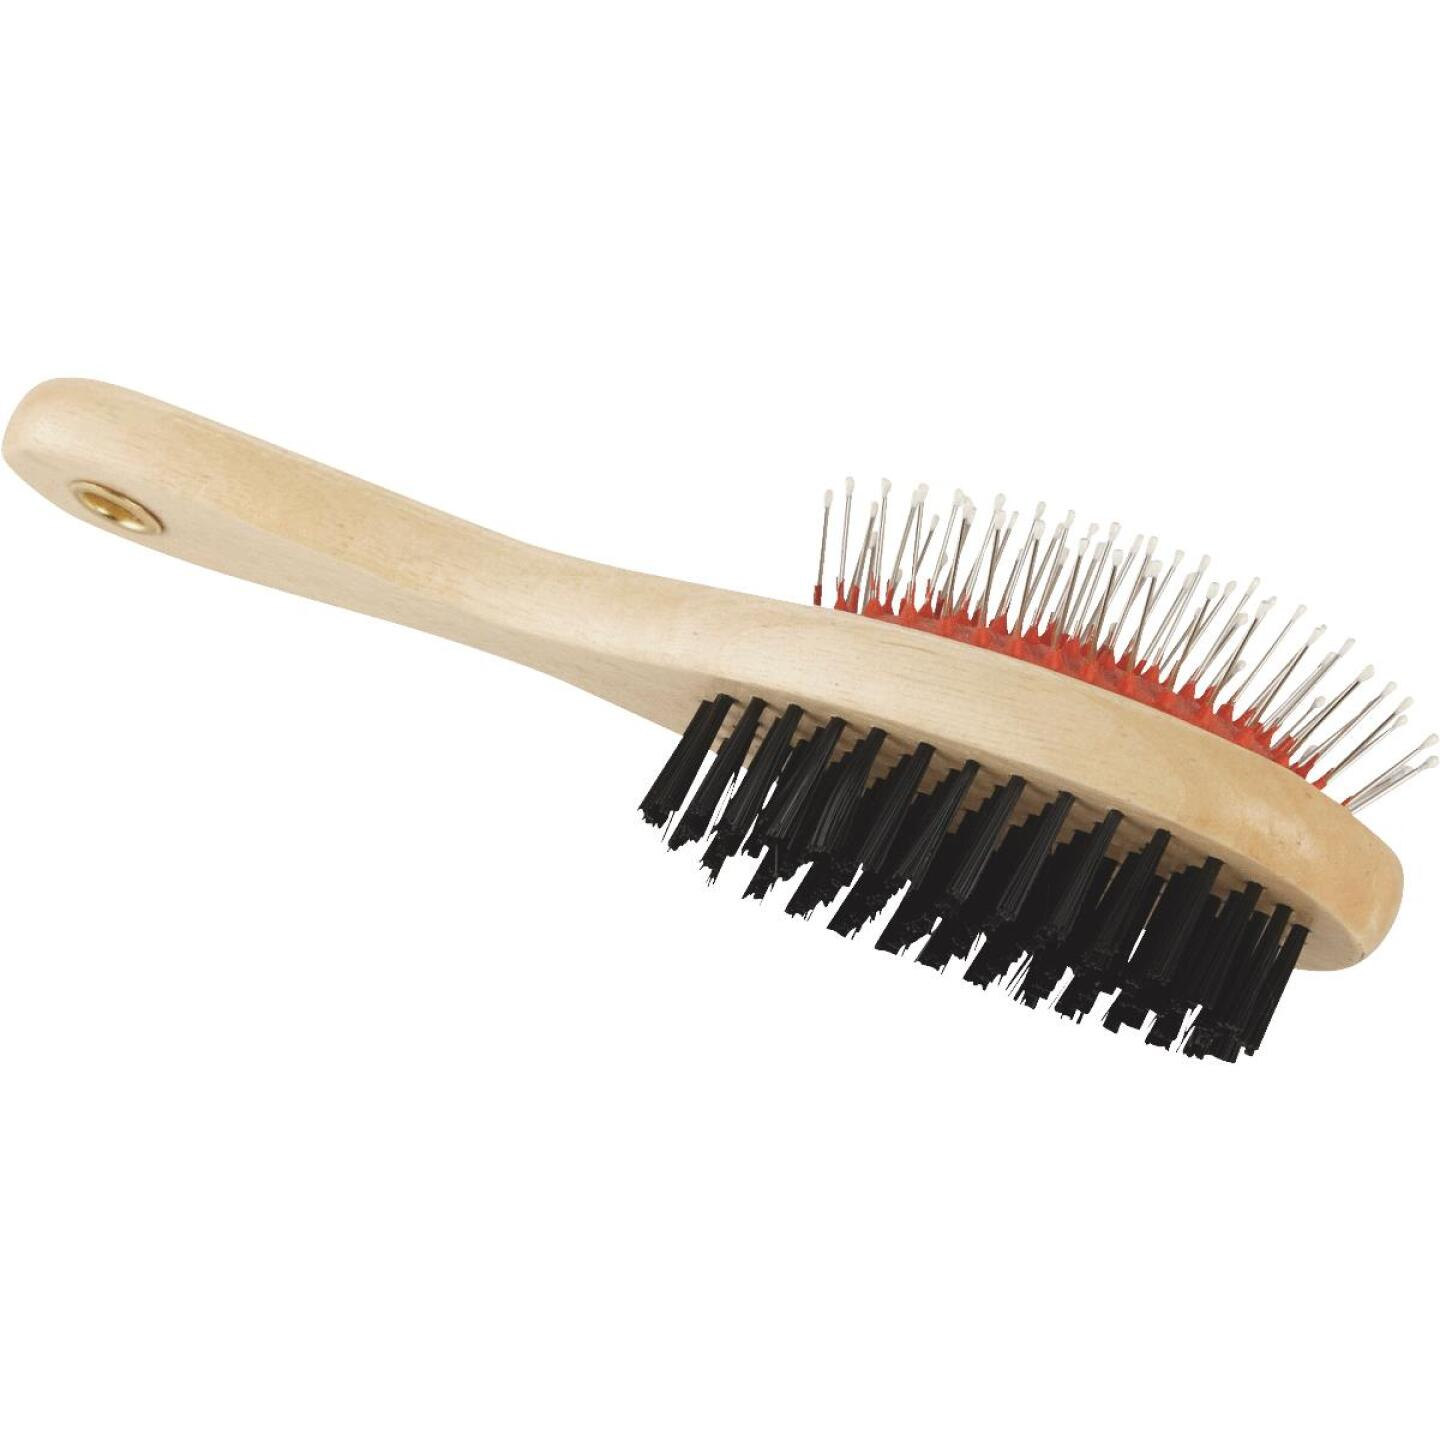 Smart Savers Plastic & Metal Bristle Pet Brush Combo Image 2